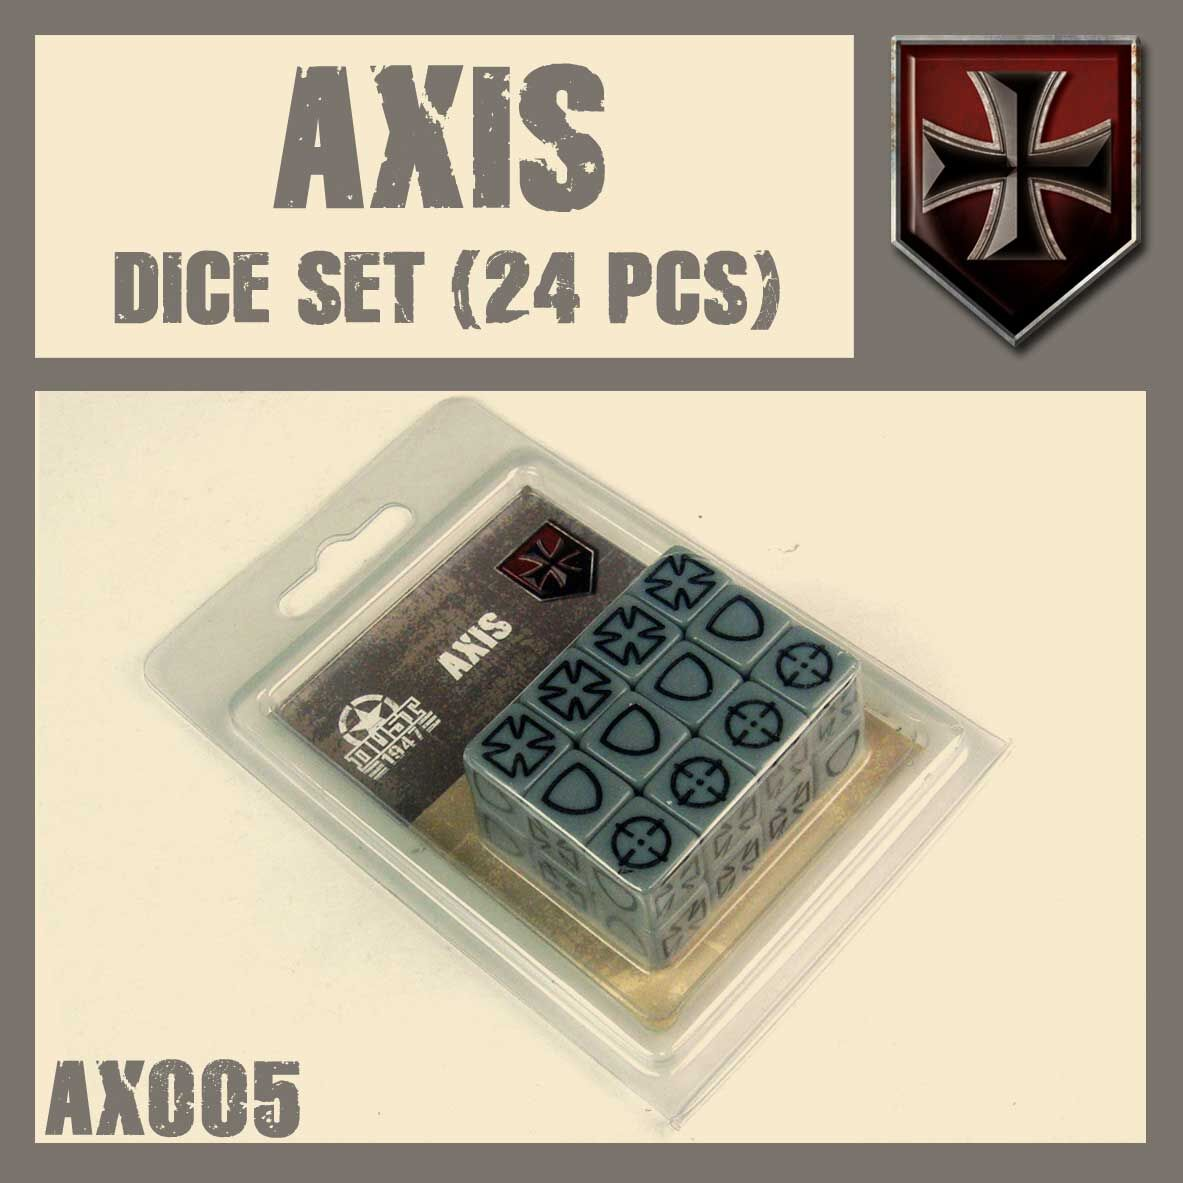 Axis dice set